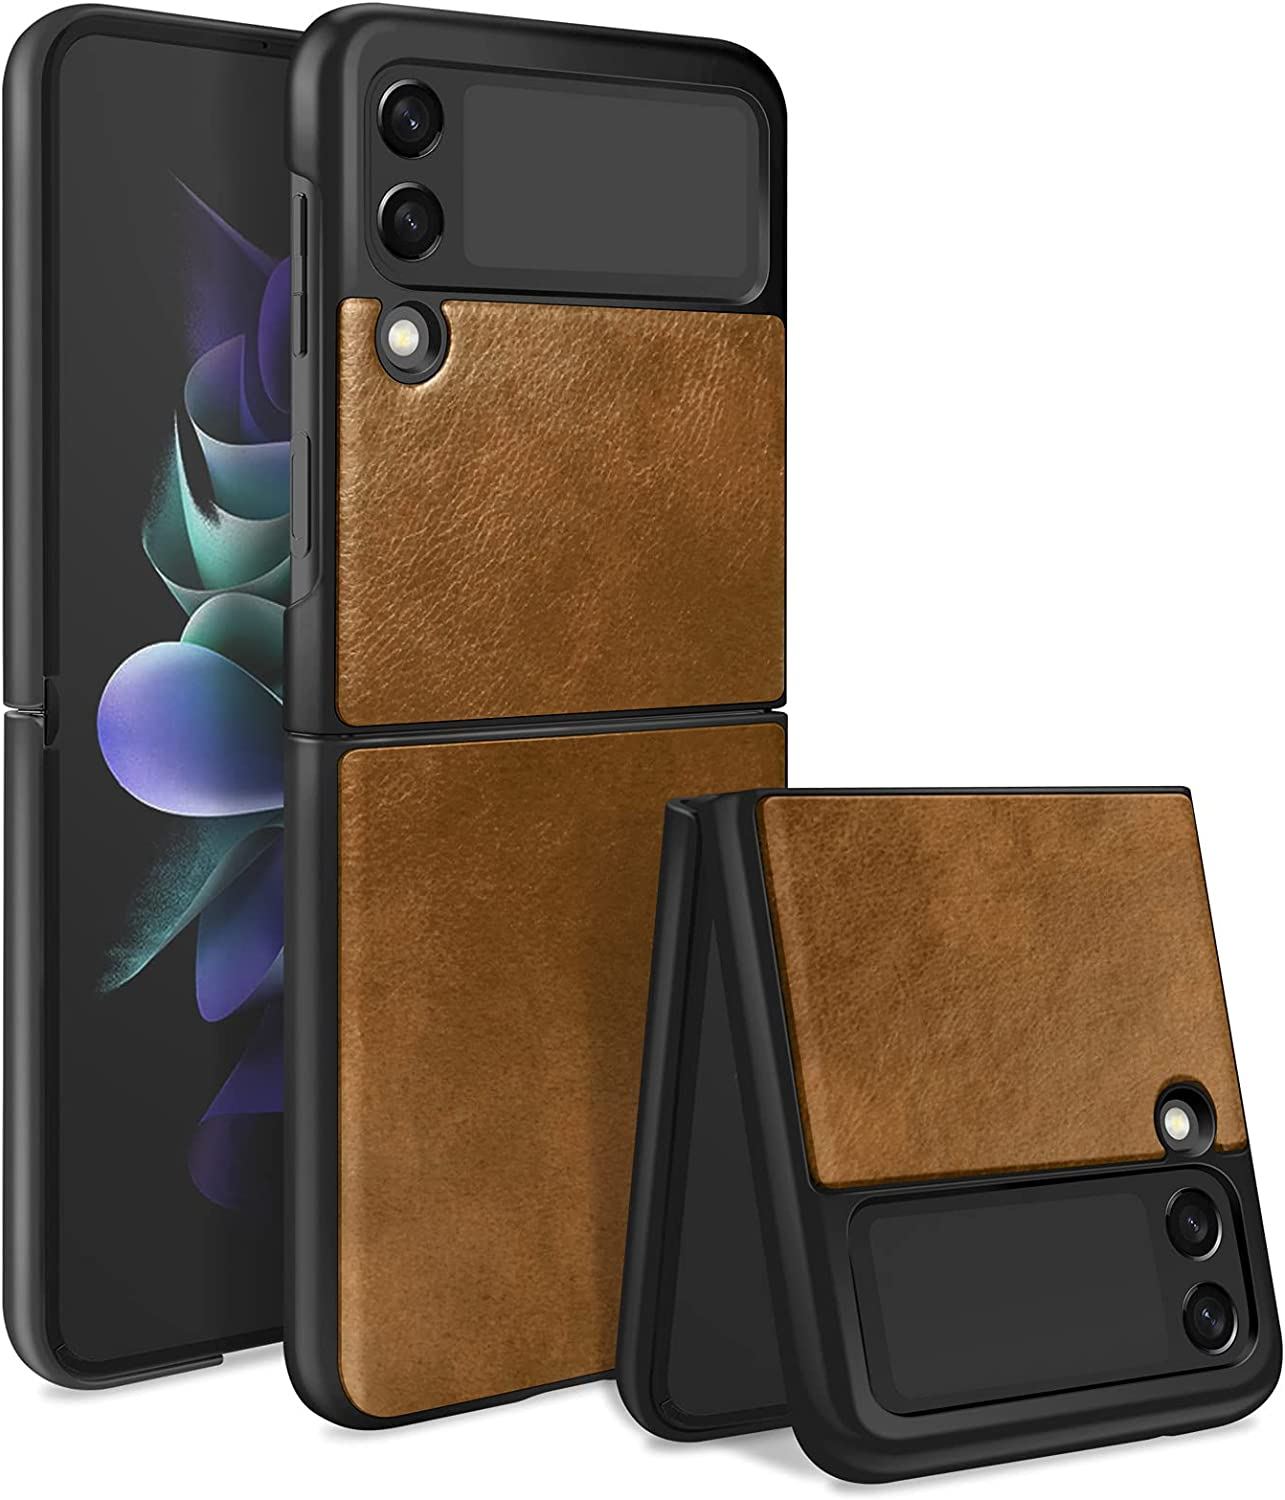 KSWOUS Case for Samsung Galaxy Z Flip 3 Case 5G Leather Hard PC Cover, Heavy Duty Shockproof Non-Slip Grip Protective Shell Stylish Cover Thin Fit Phone Case for Galaxy Z Flip 3 5G, Brown